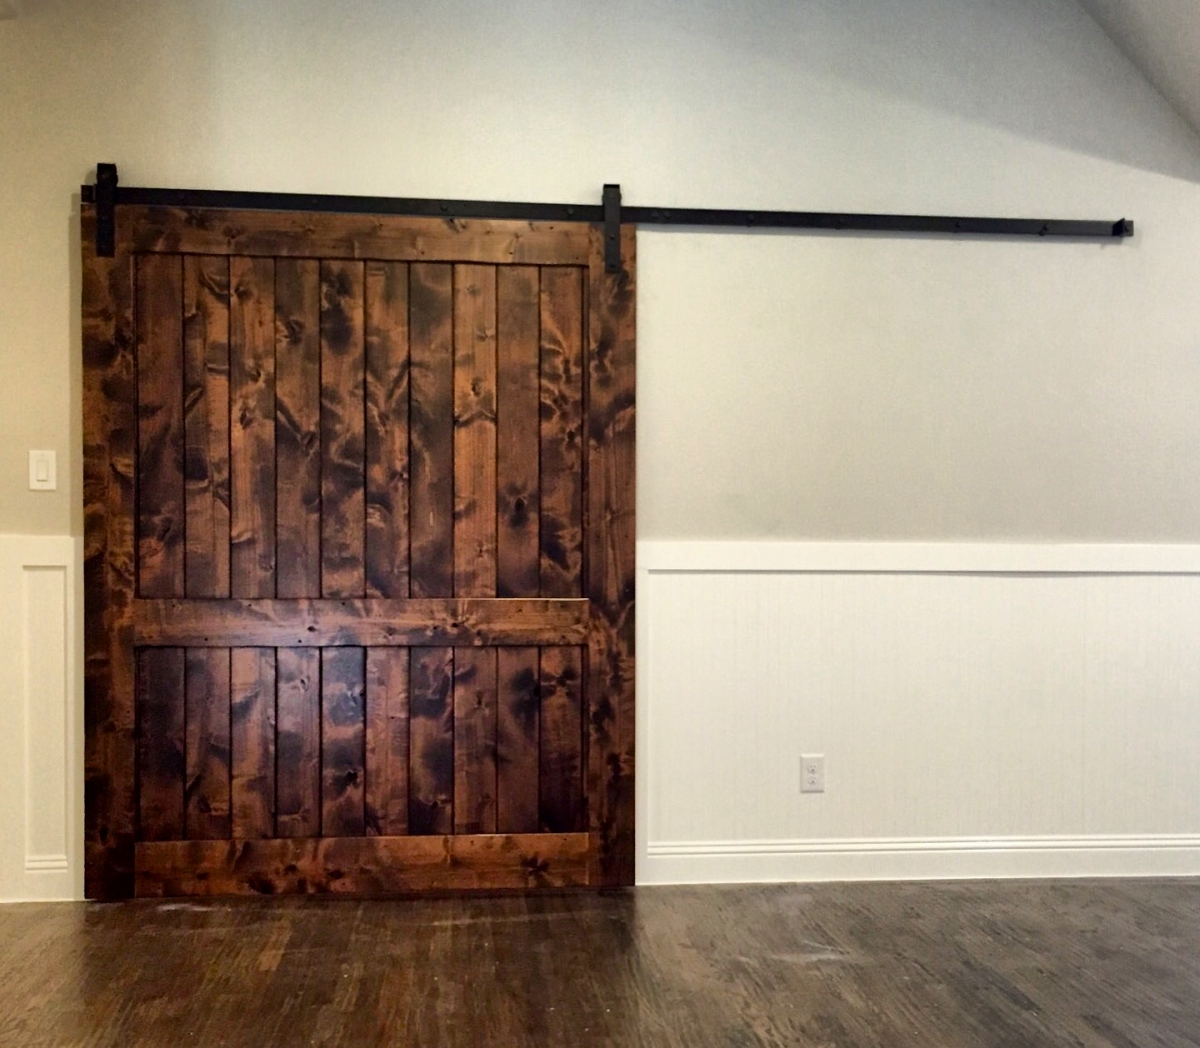 Oversized doors oversized front doors sng pvot oversized for Oversized barn doors